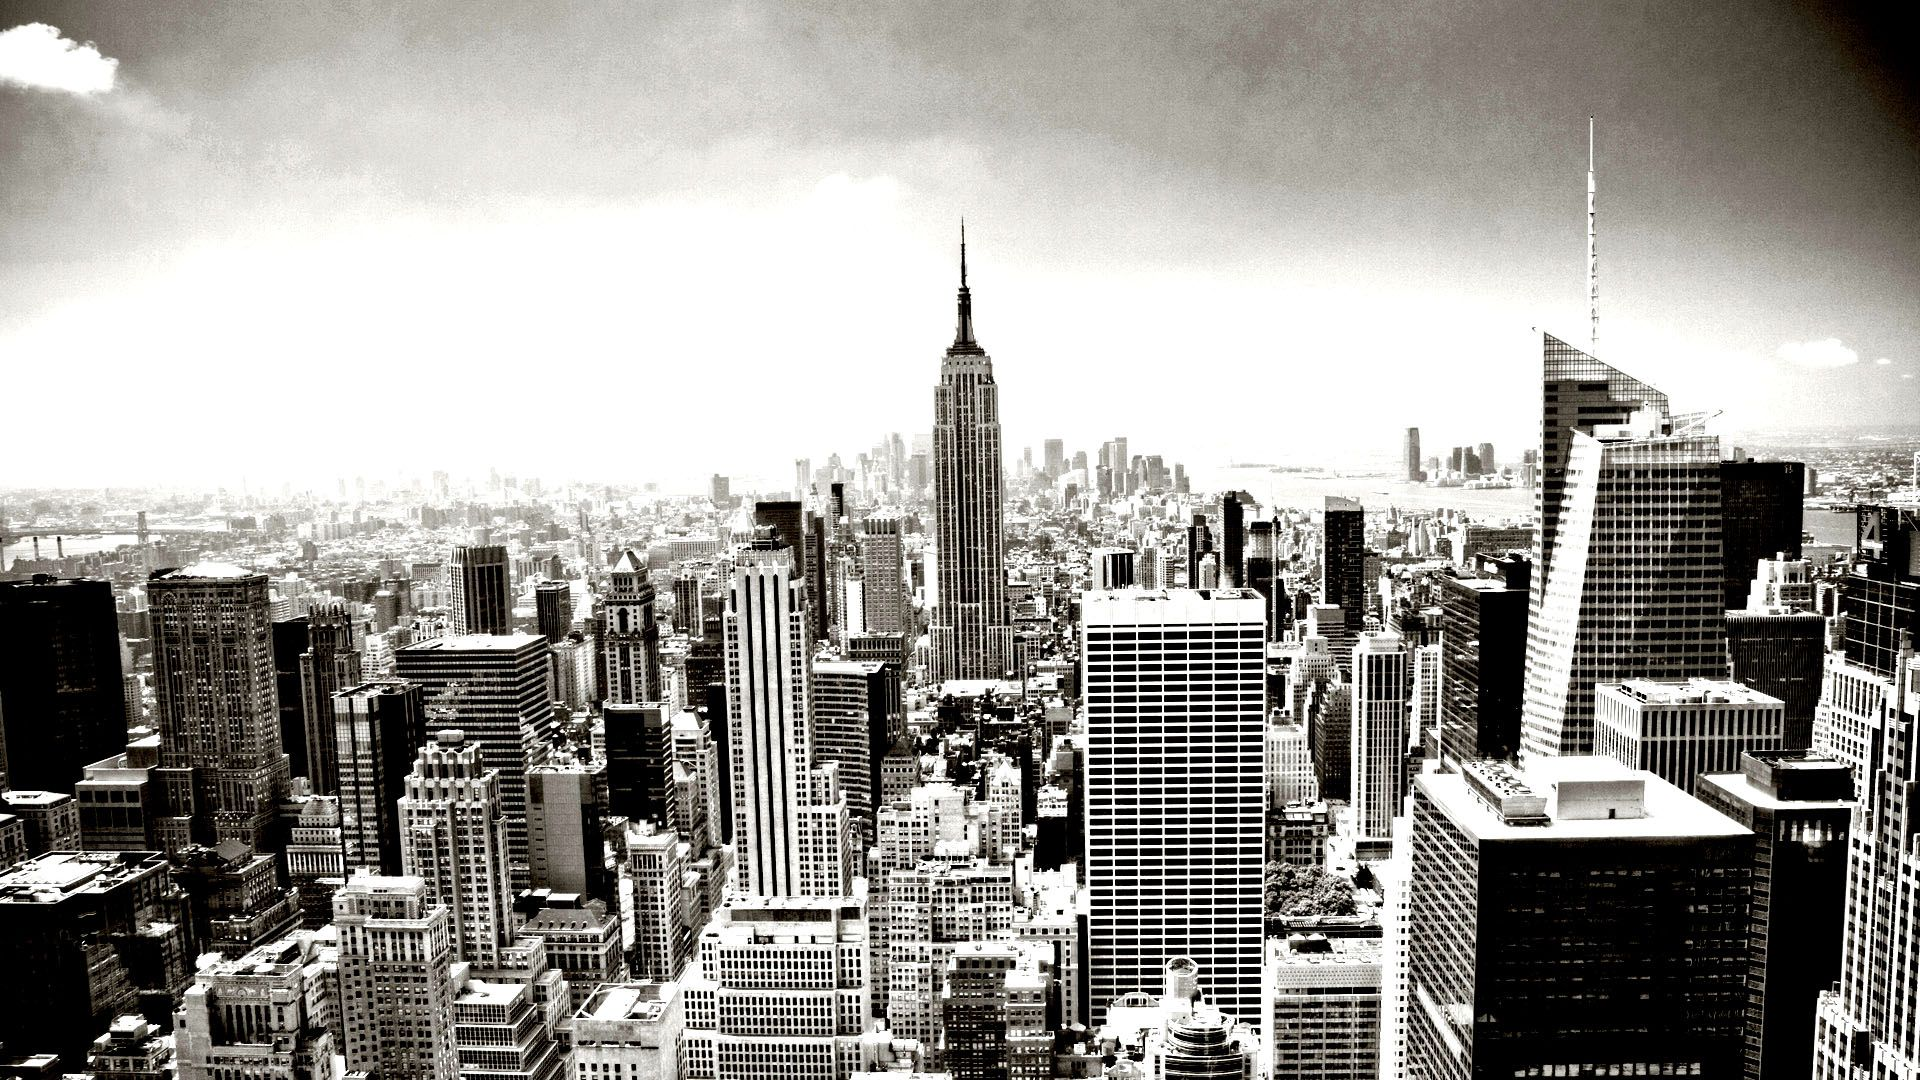 Free coloring pages new york city - Free Coloring Page Coloring New York Empire State Building Aerial